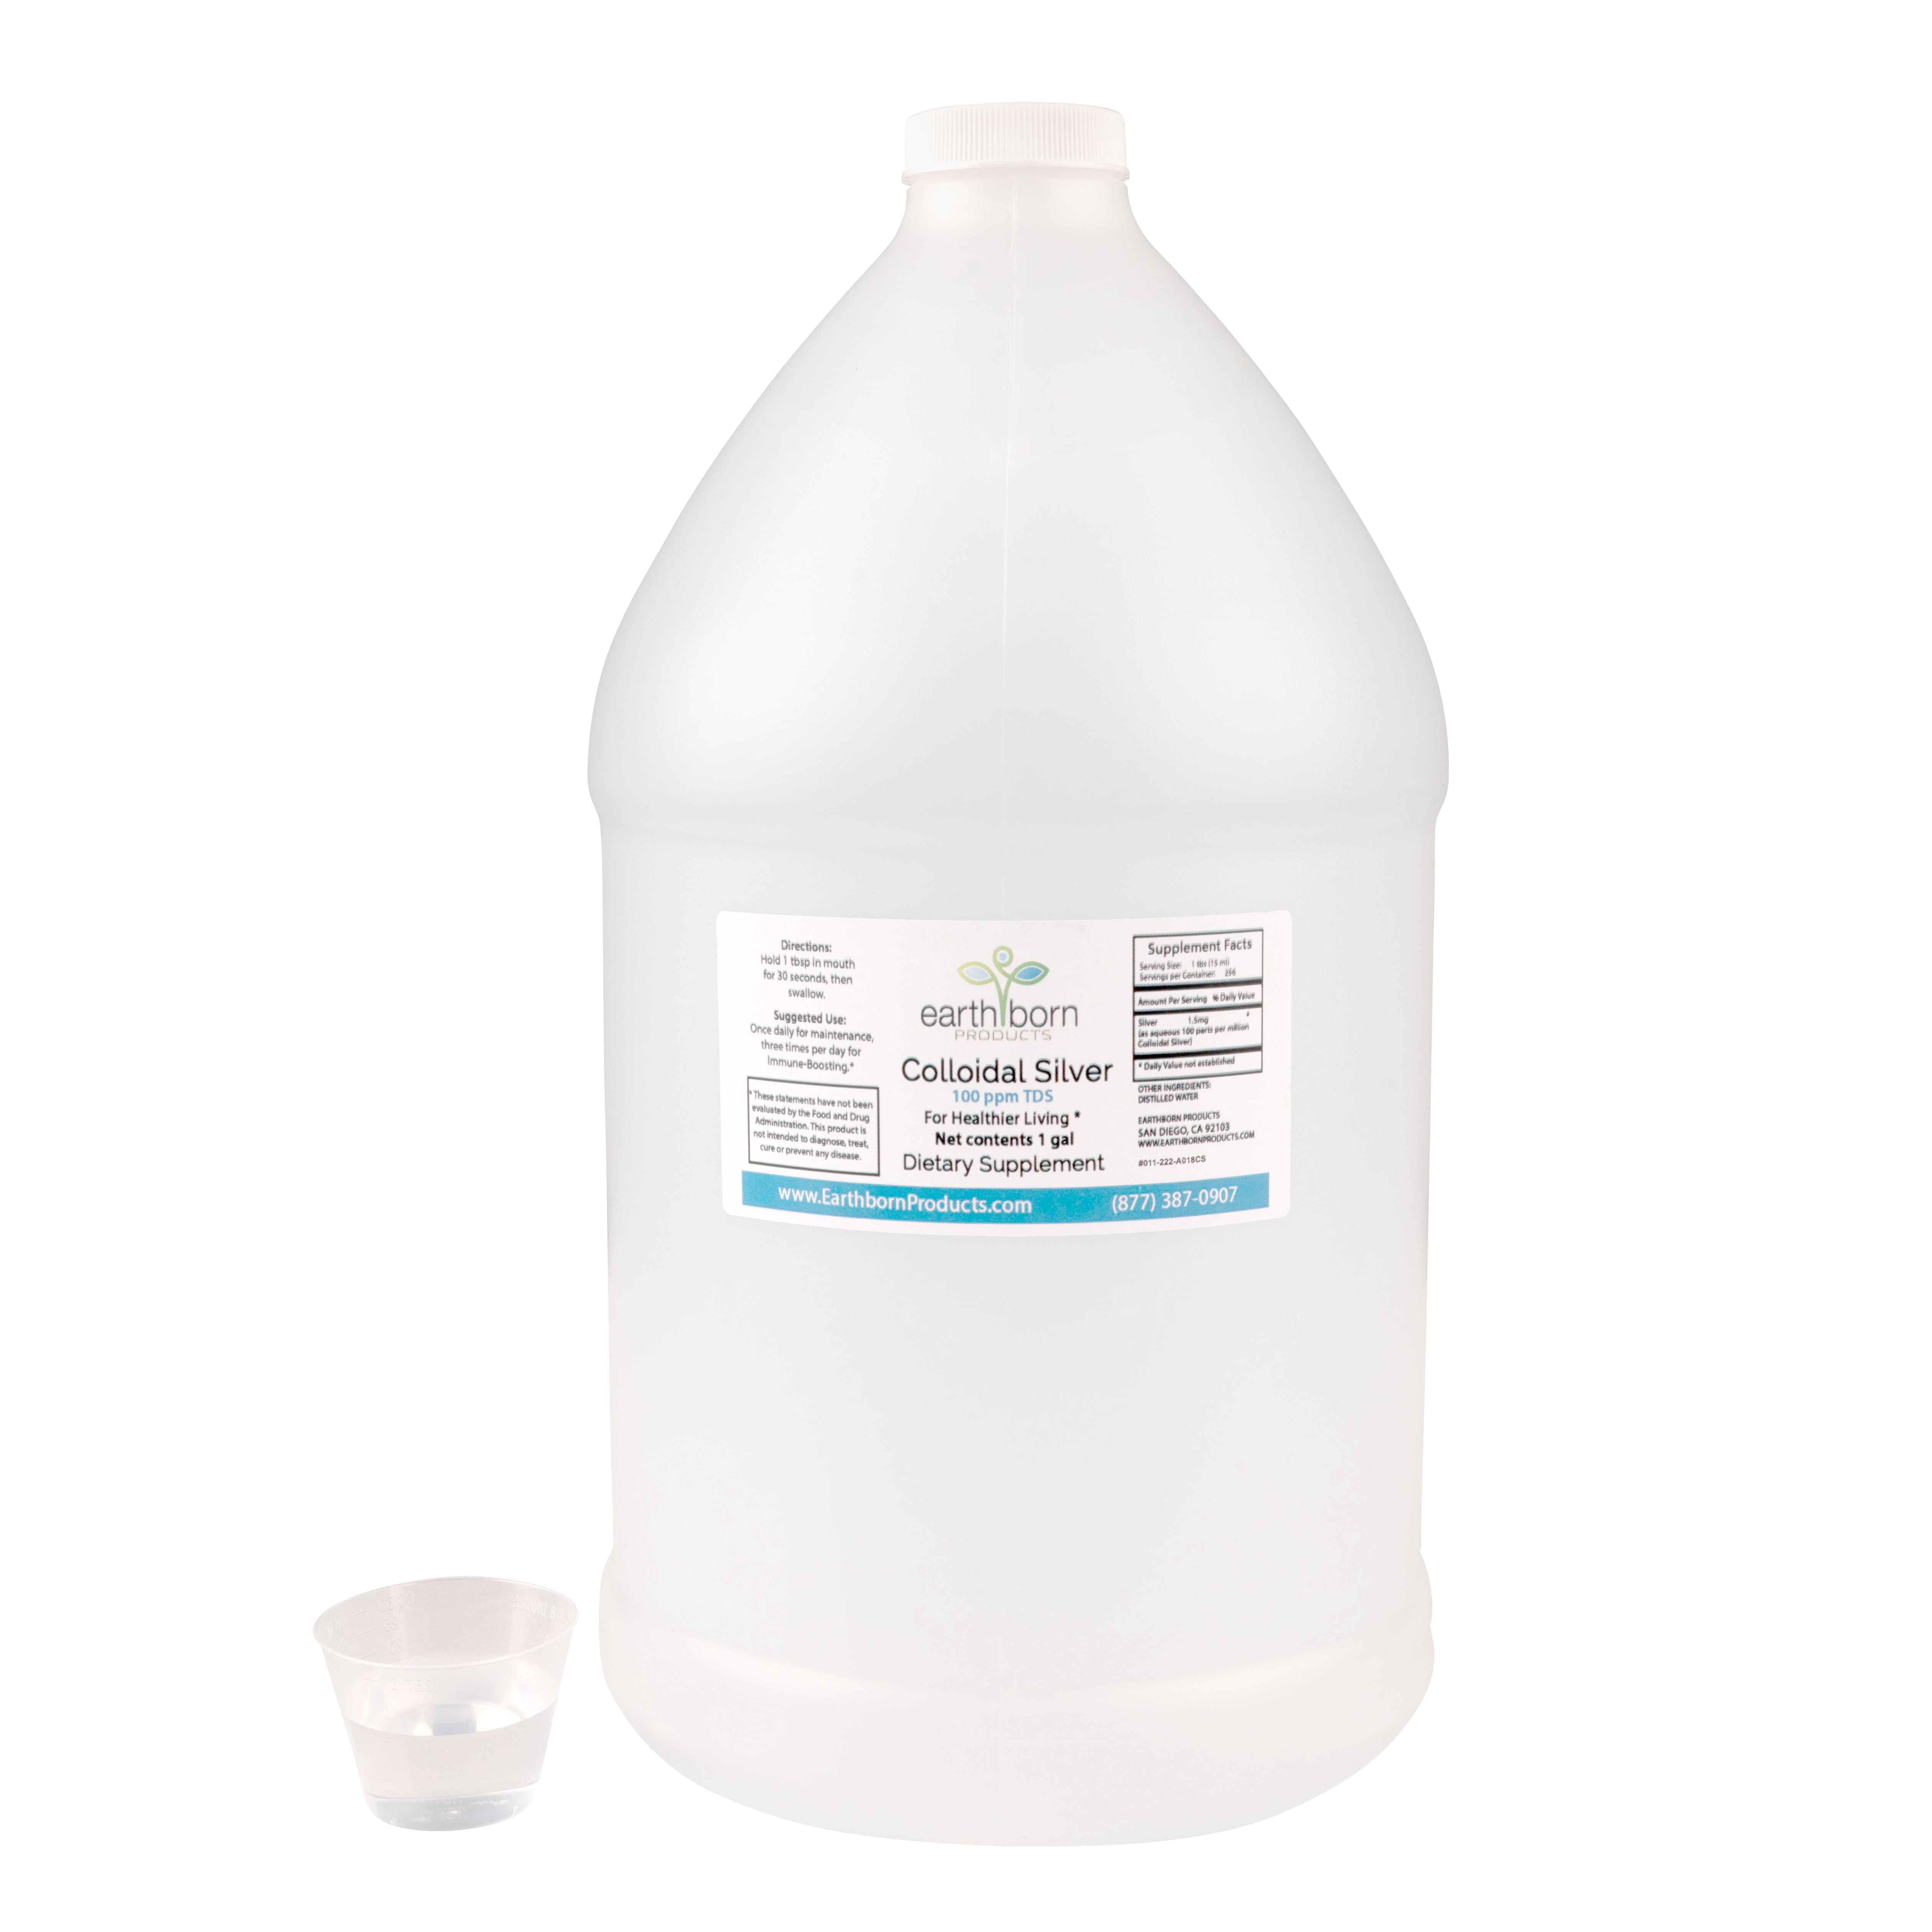 Colloidal Silver 100 PPM - 1 gallon Bottle